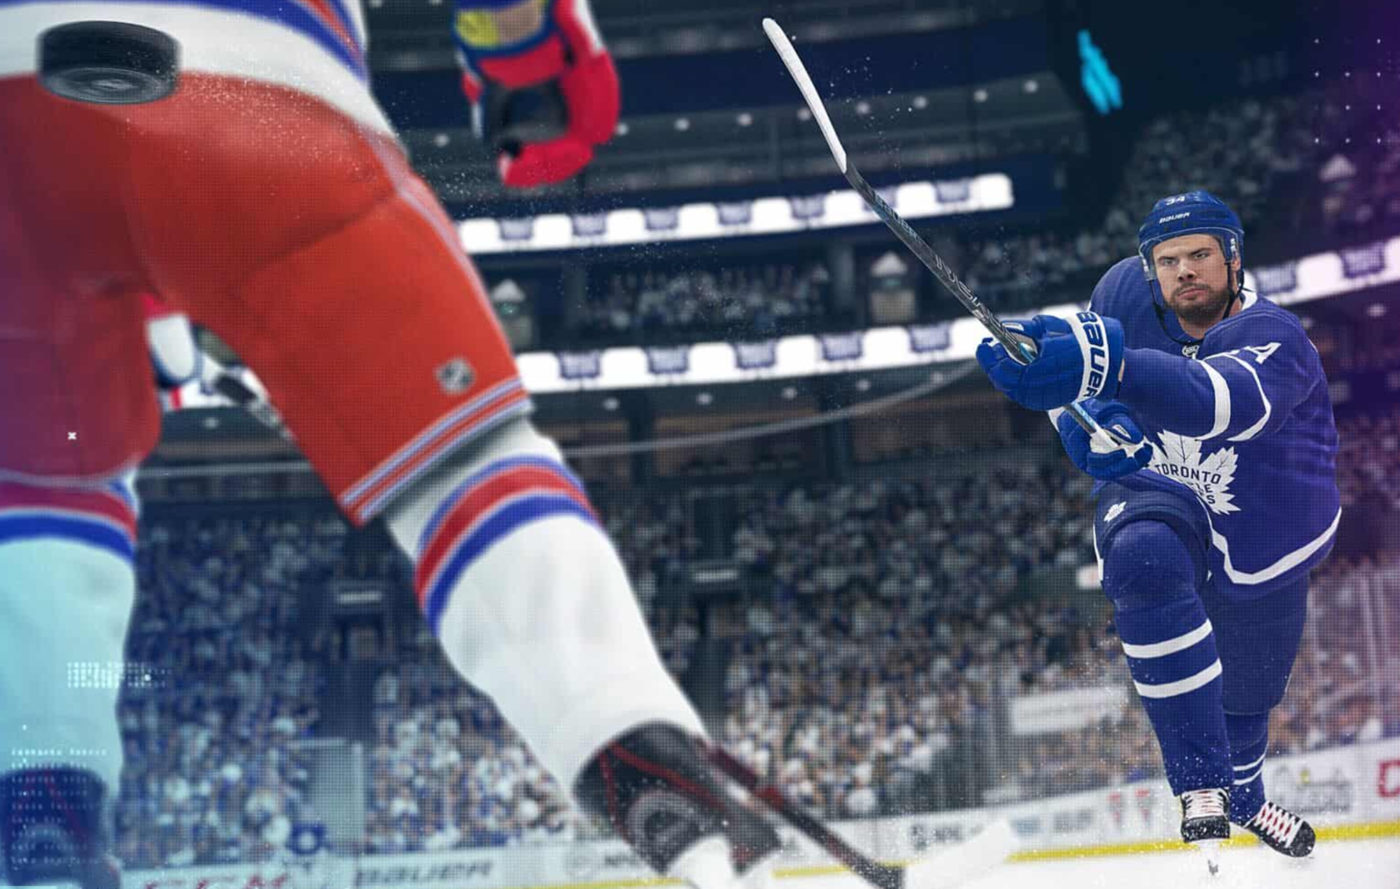 EA NHL 21 Update 1.30 December 3